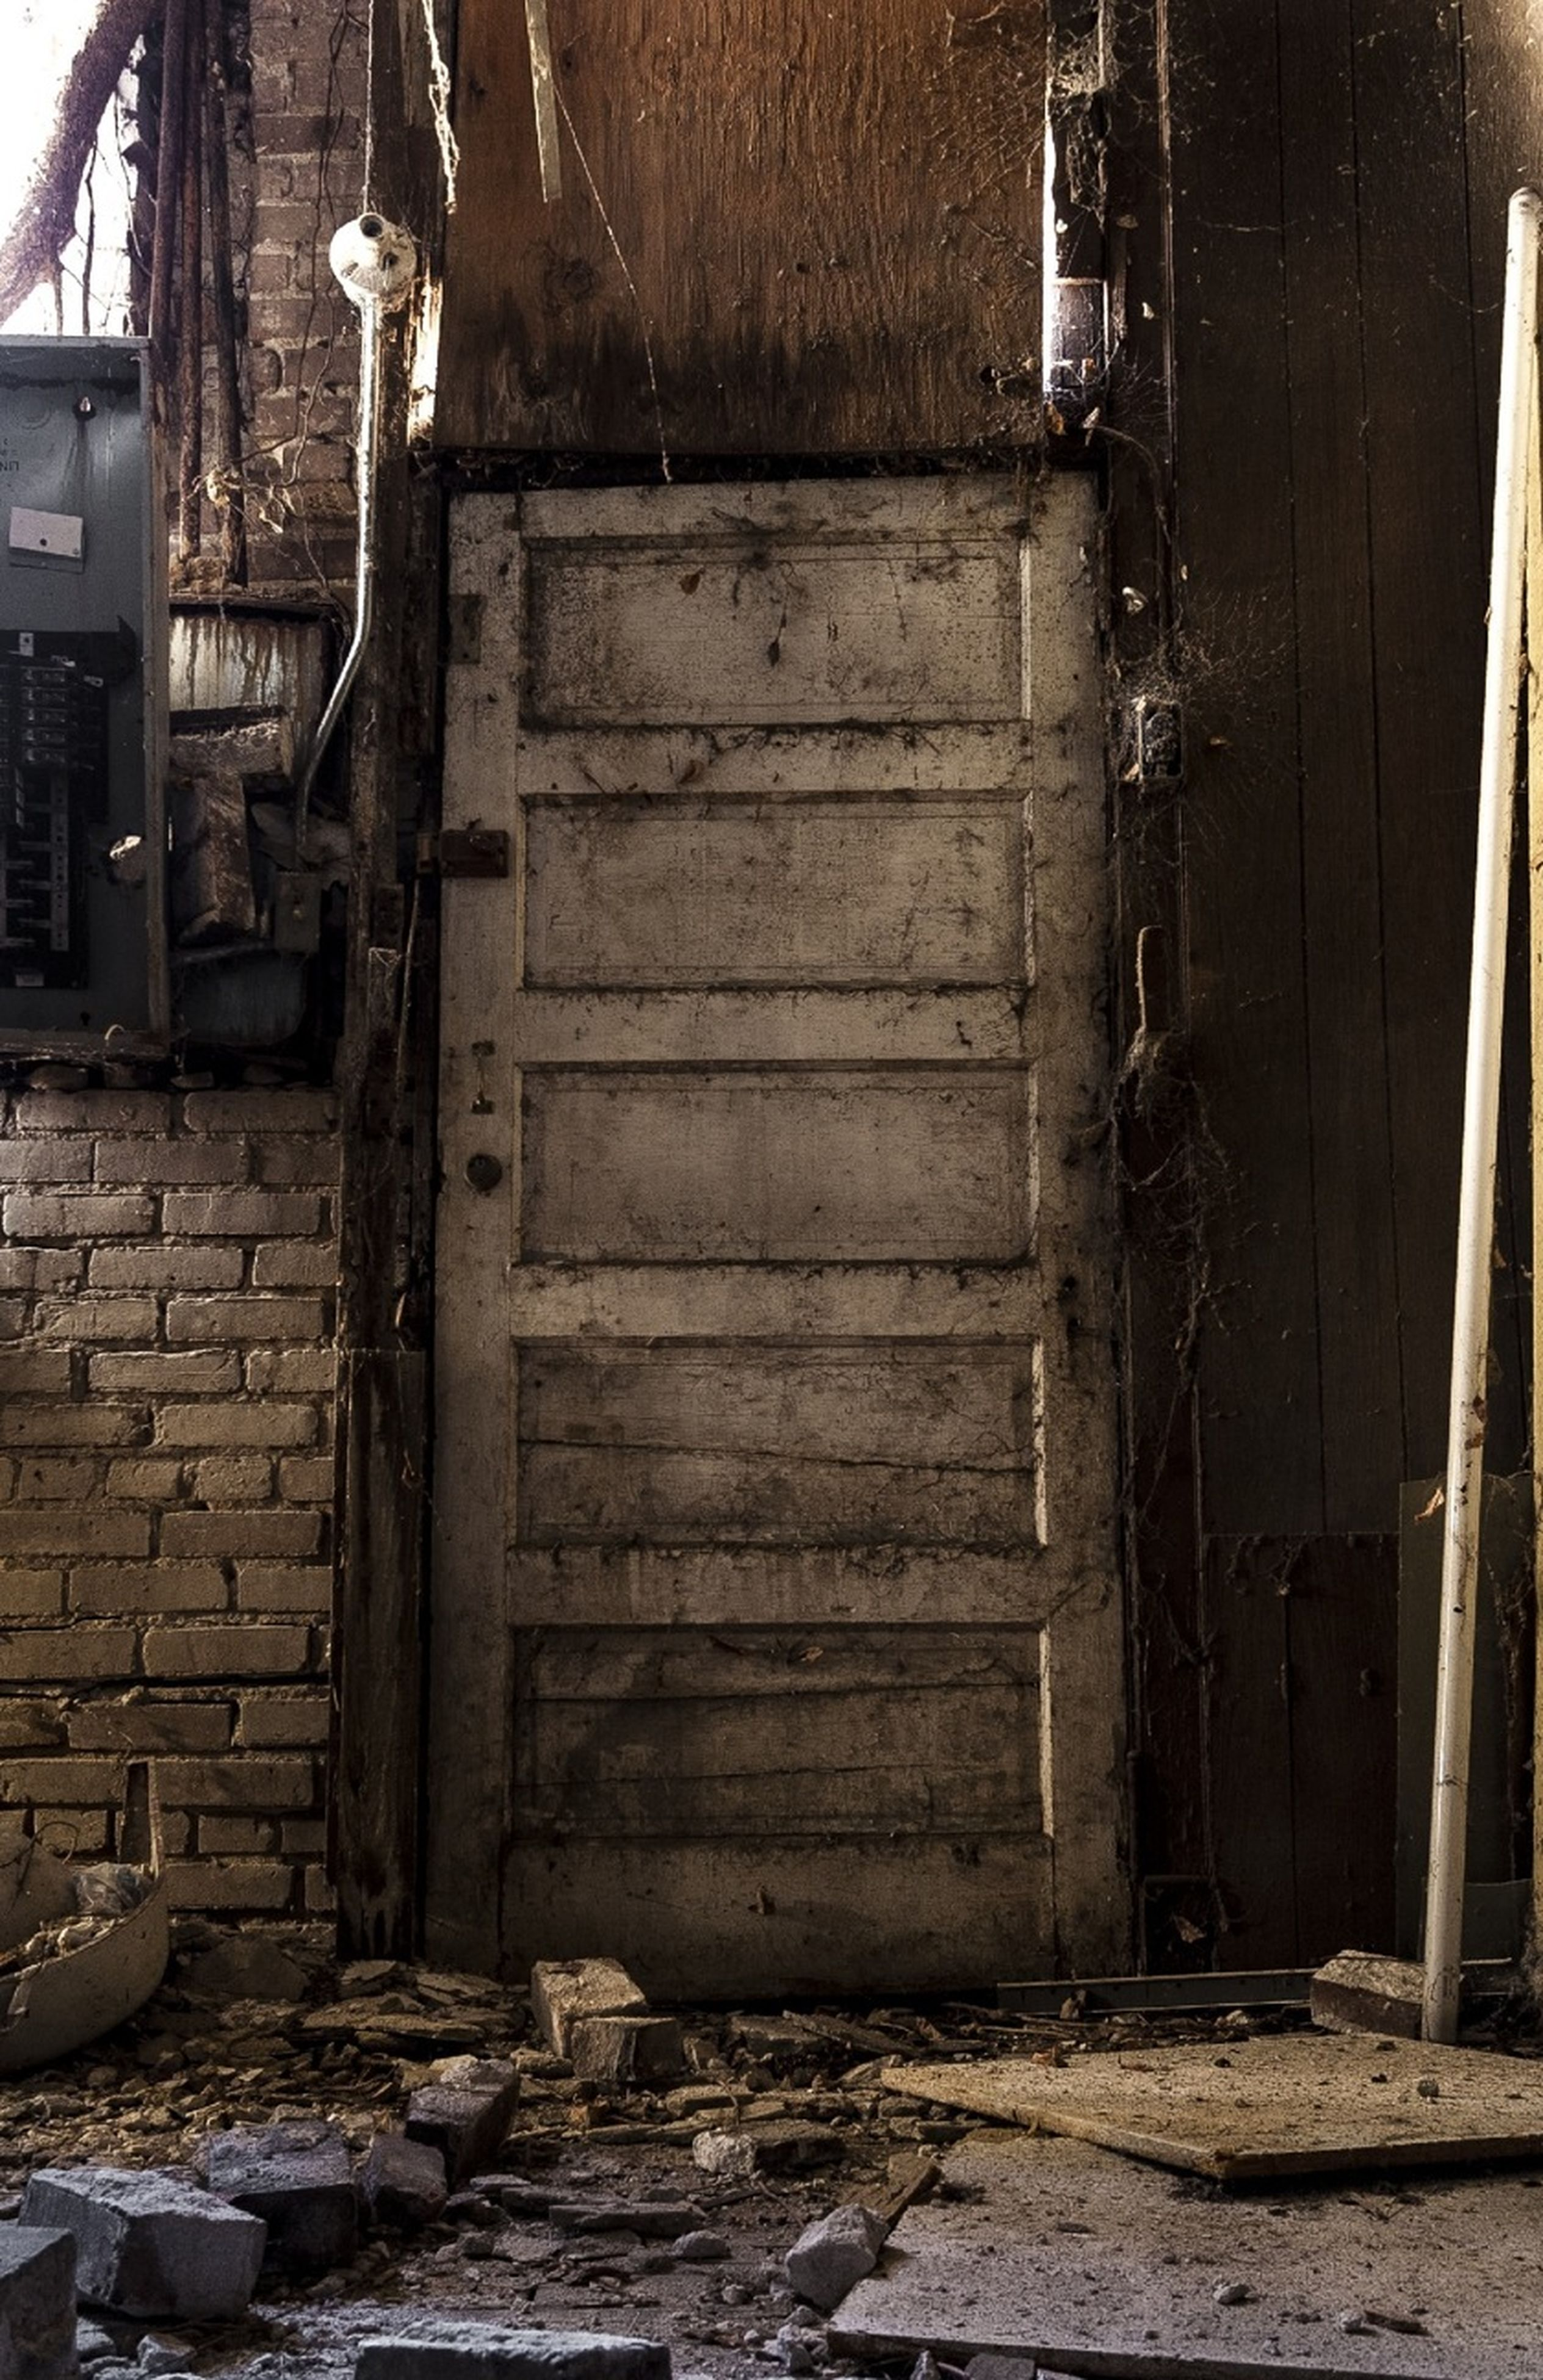 architecture, built structure, building exterior, house, abandoned, old, weathered, damaged, residential structure, obsolete, door, run-down, wall - building feature, building, deterioration, residential building, outdoors, closed, wood - material, day